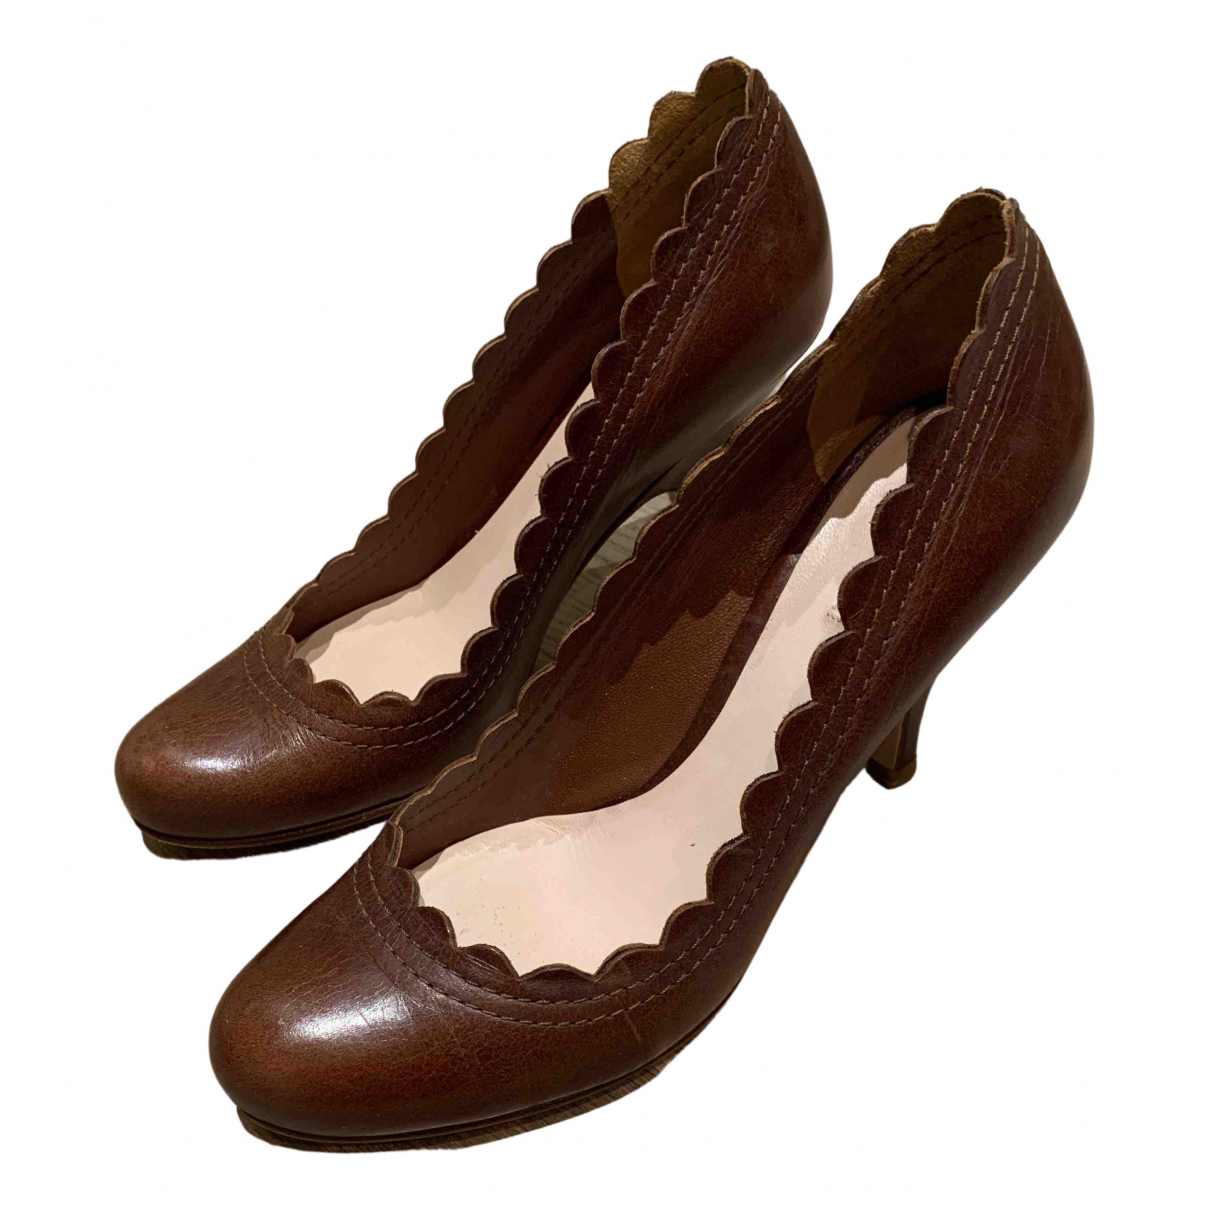 Miu Miu N Brown Leather Heels for Women 36 EU